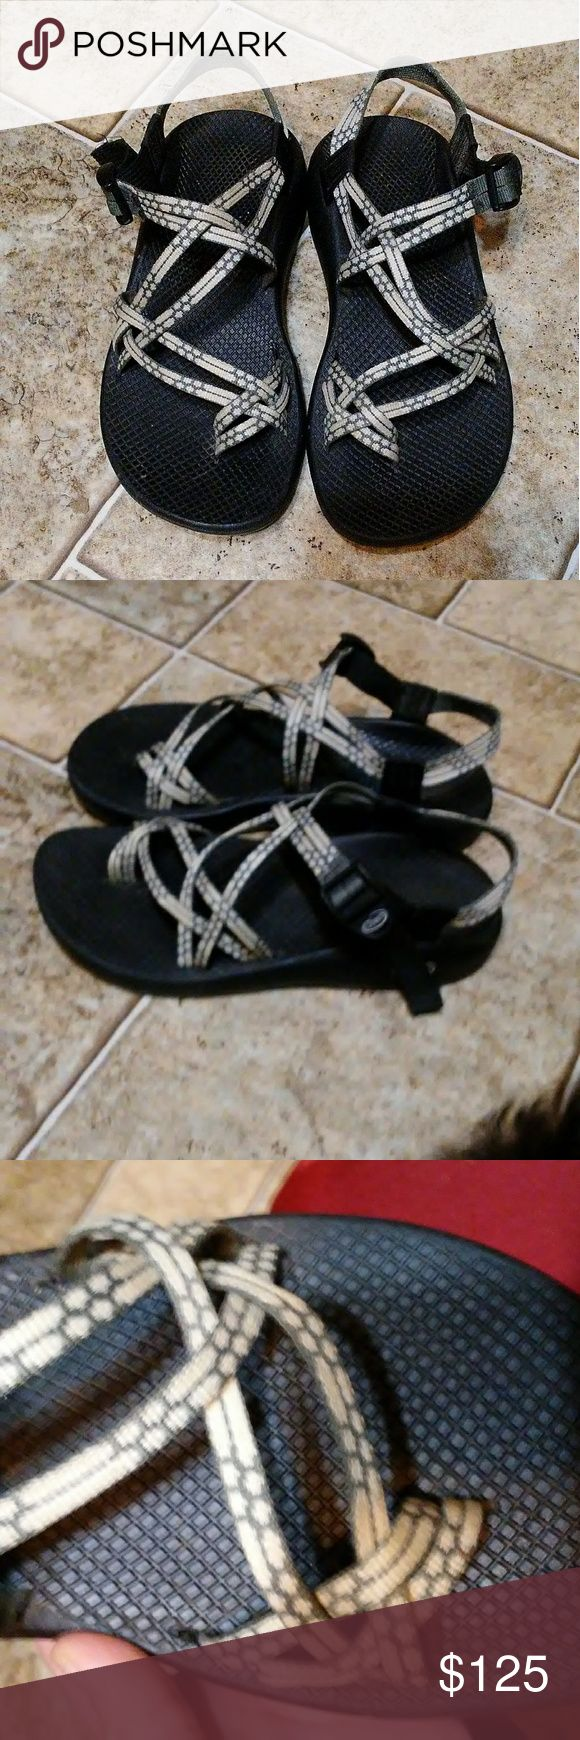 Chacos Has back and toe  straps. Tan and brown color.will negotiate priceif reasonable These are my sister's and she needs to sale these were too big when she got them home and wore them and didn't like them how they fit her.  She wore them 2X they are like new!!! NO TRADES SELLING FOR MY SISTER Chaco Shoes Sandals